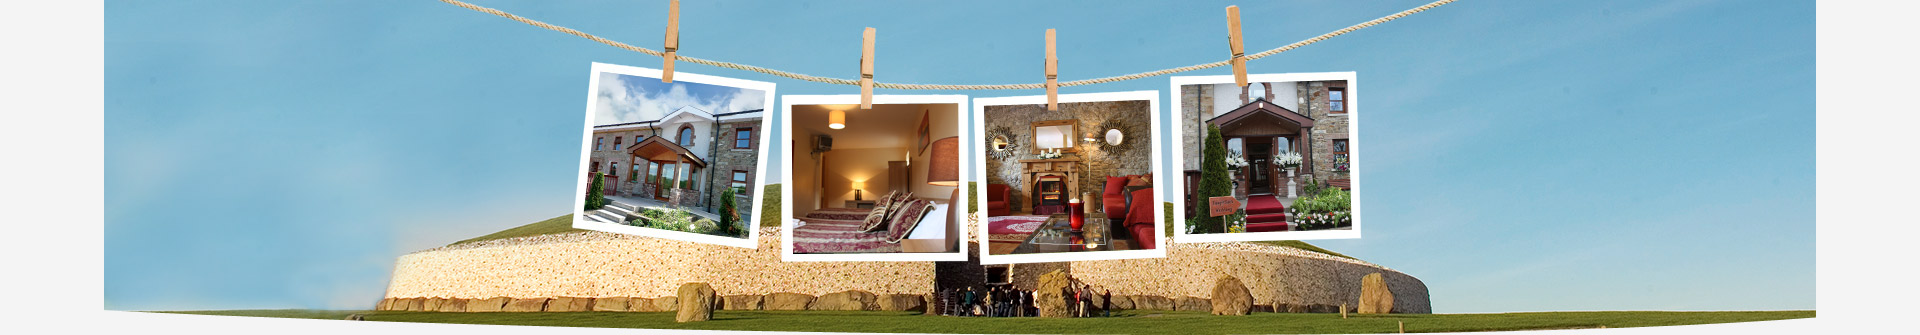 Newgrange Lodge - Hostel beside Newgrange county Meath